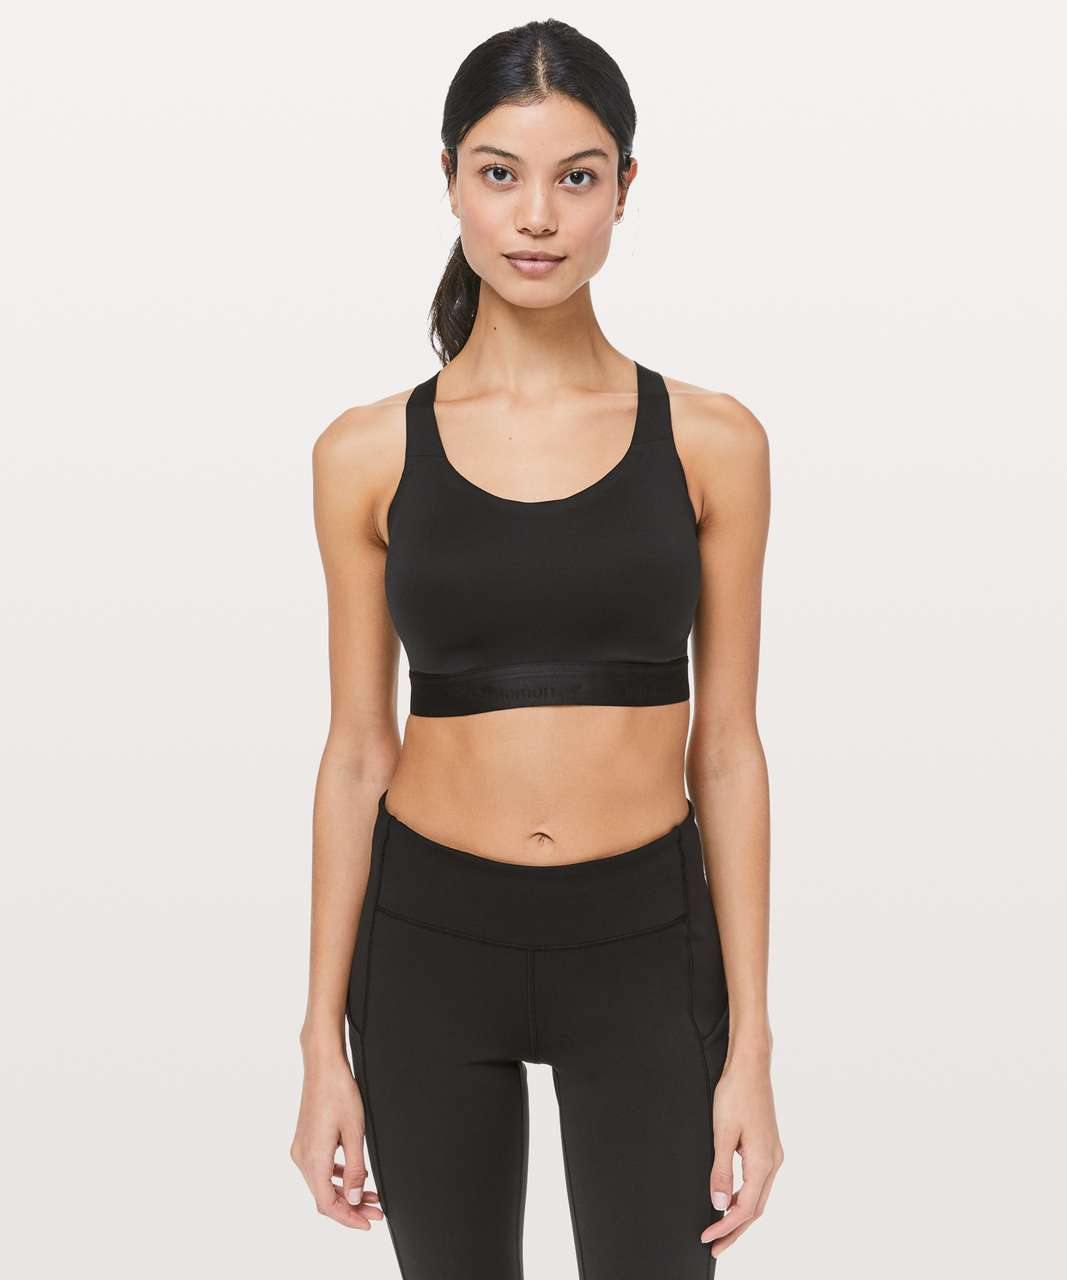 Lululemon Fine Form Bra - Black